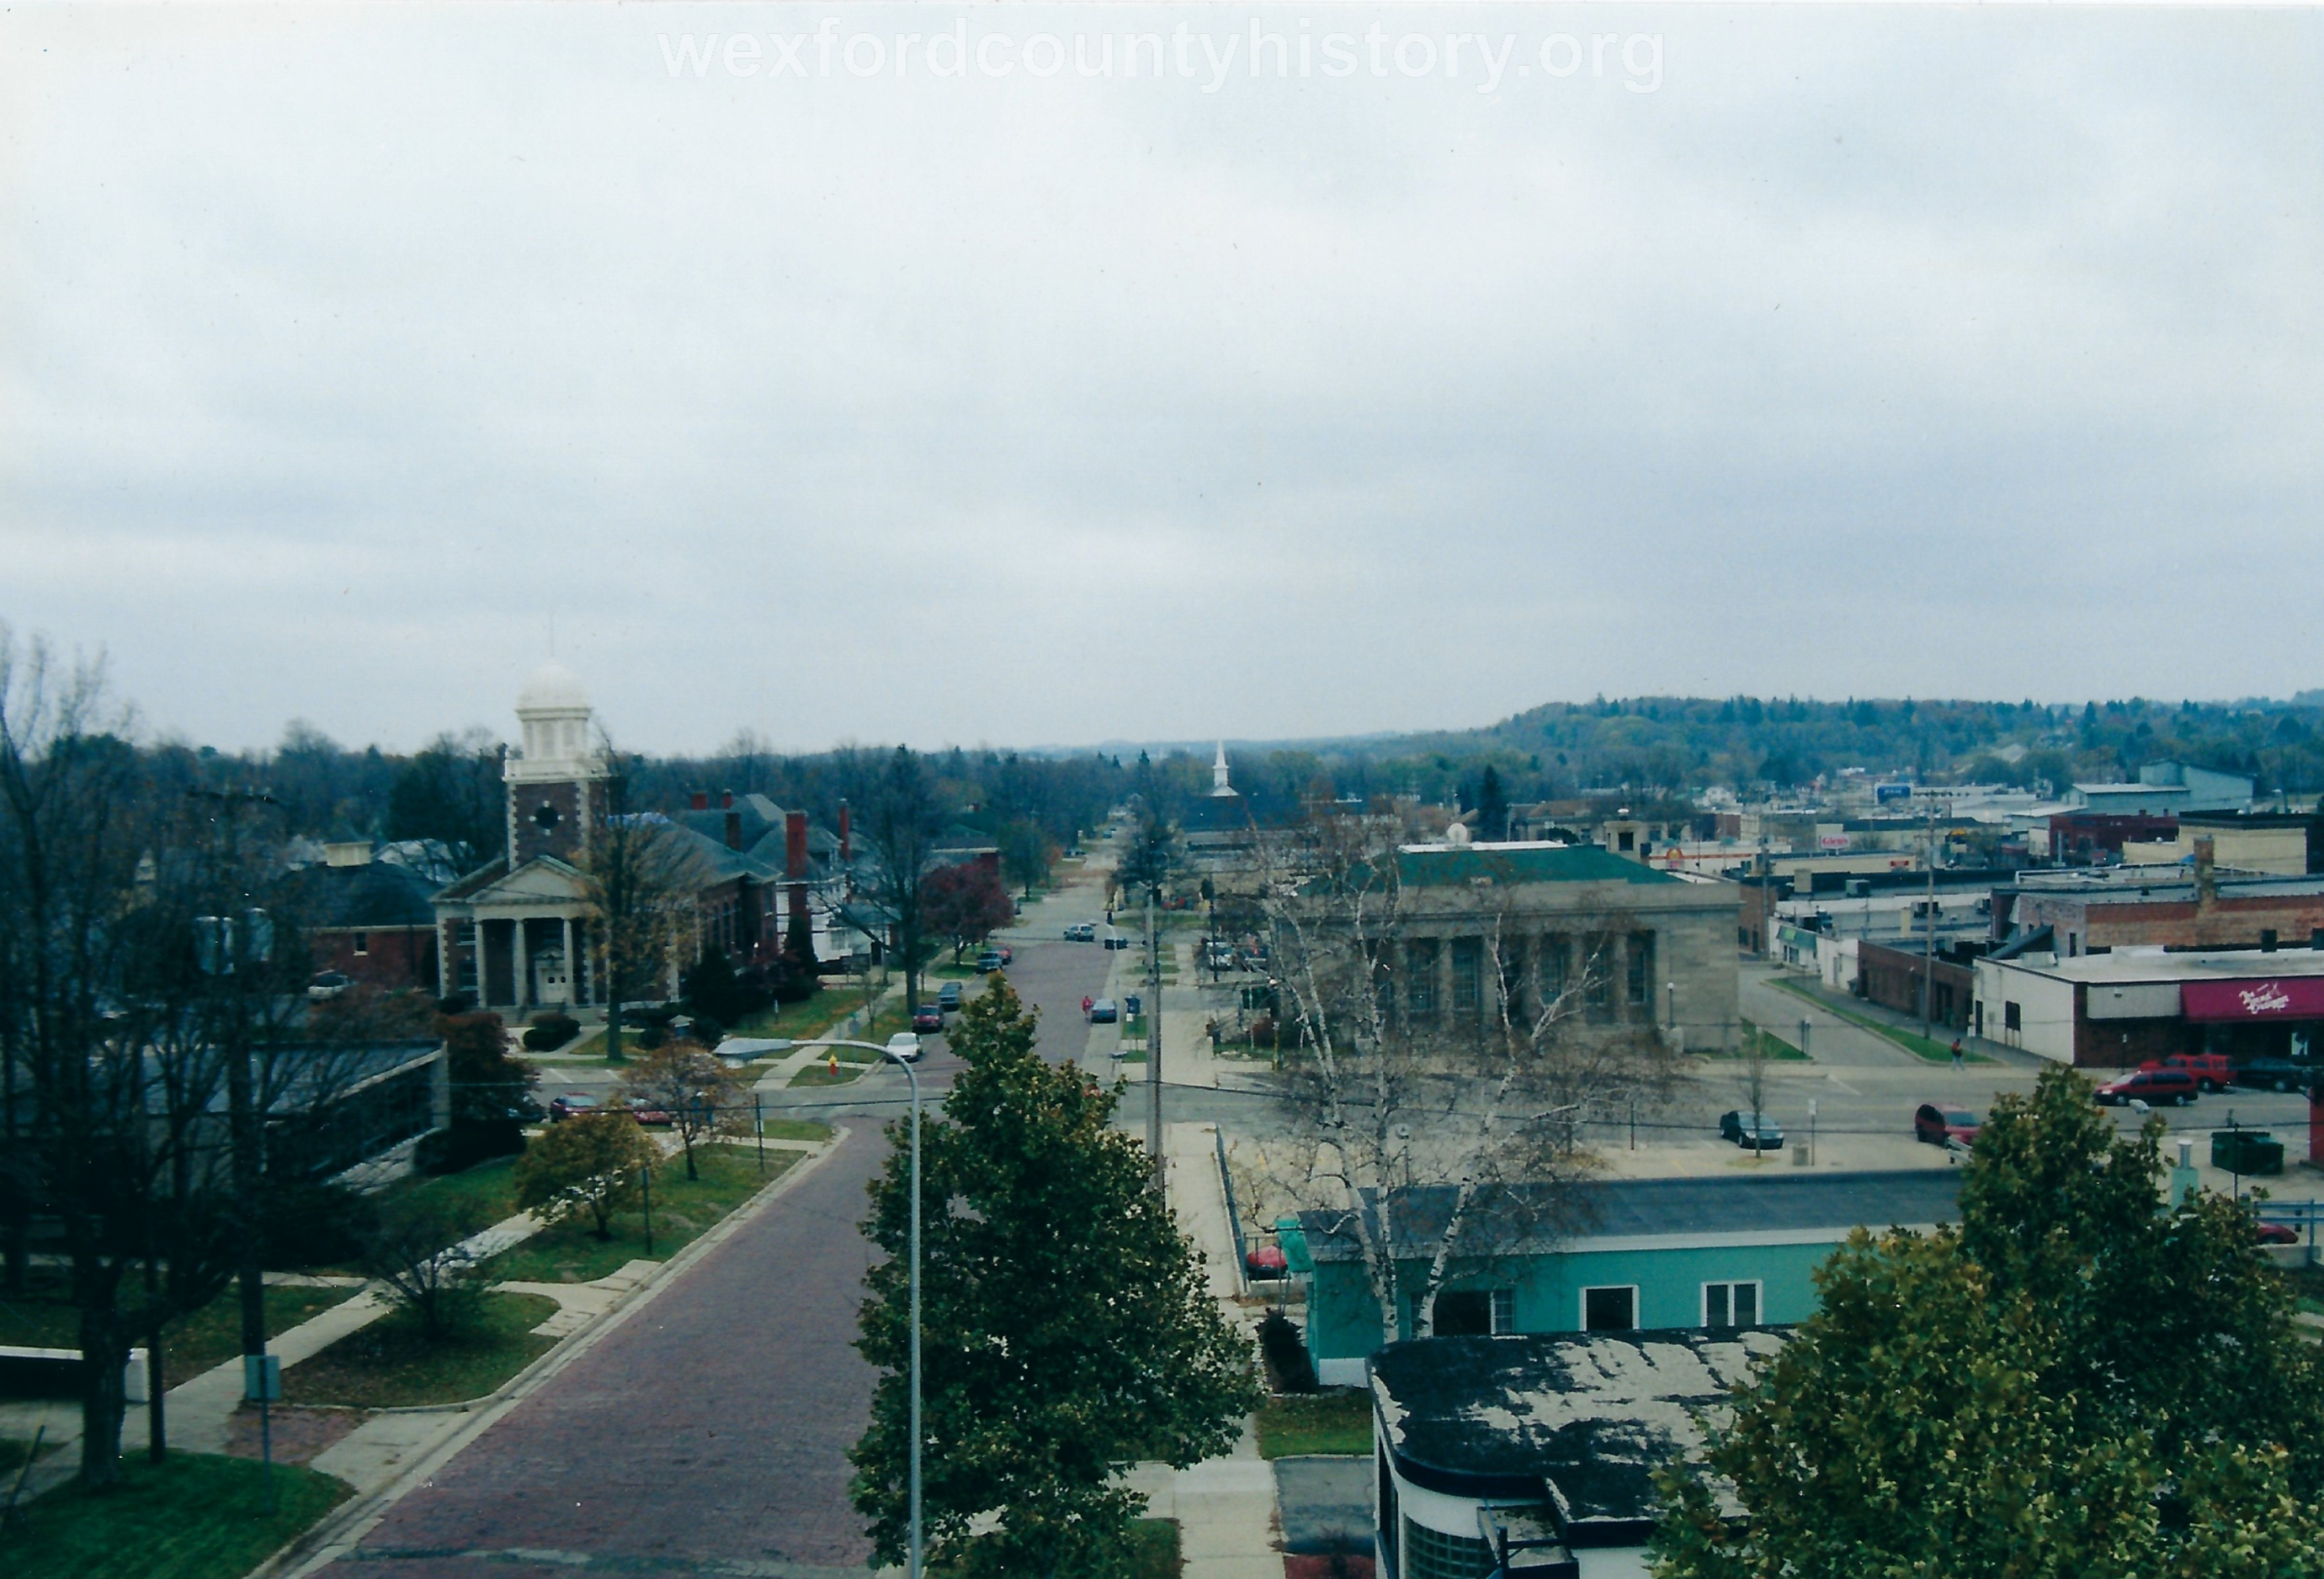 View from the roof of the Historical Society.